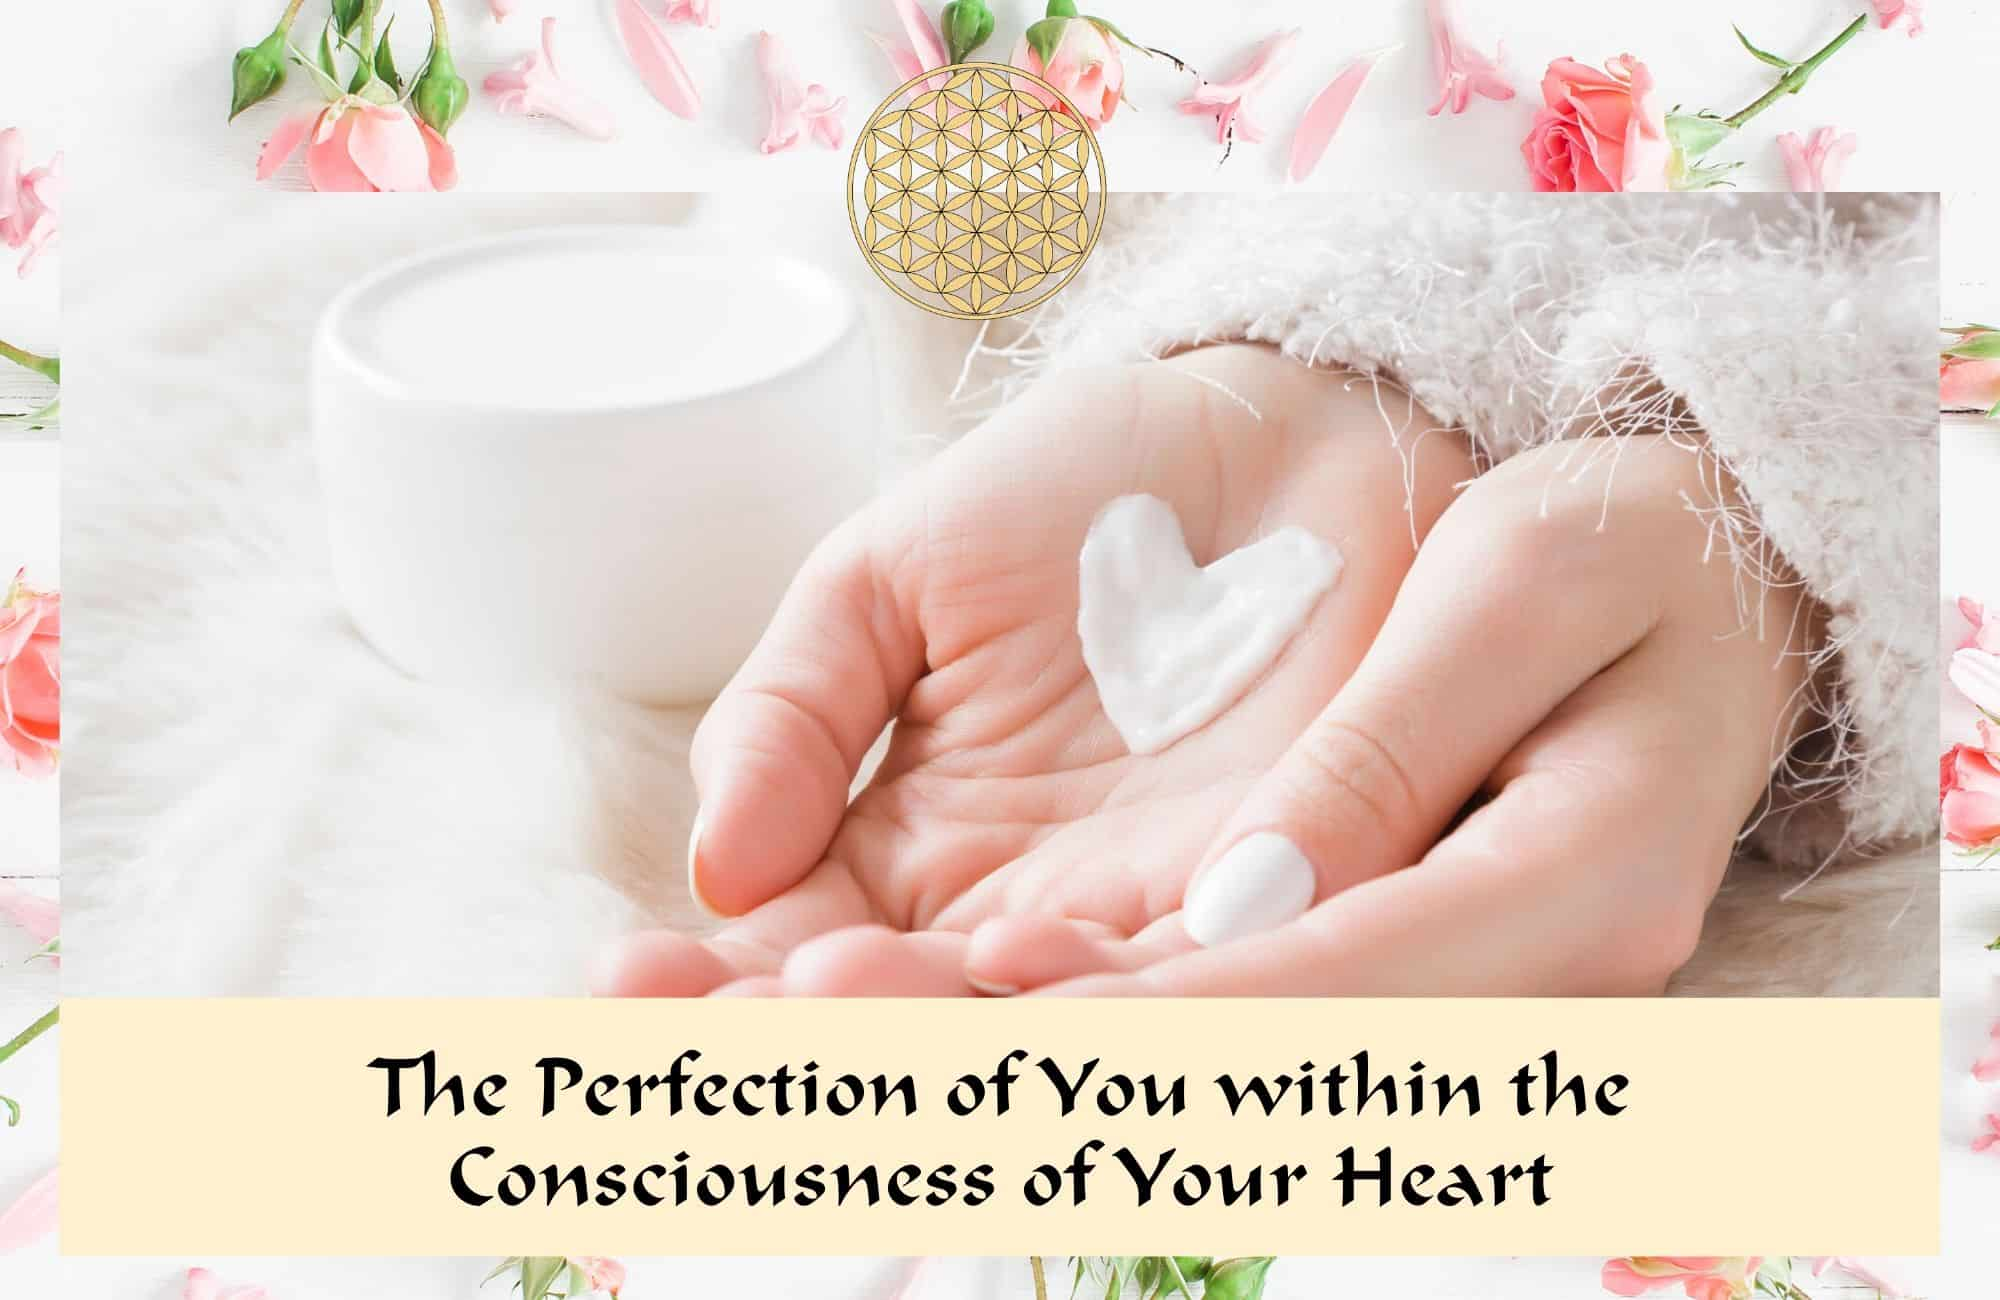 The perfection of you within the consciousness of your heart